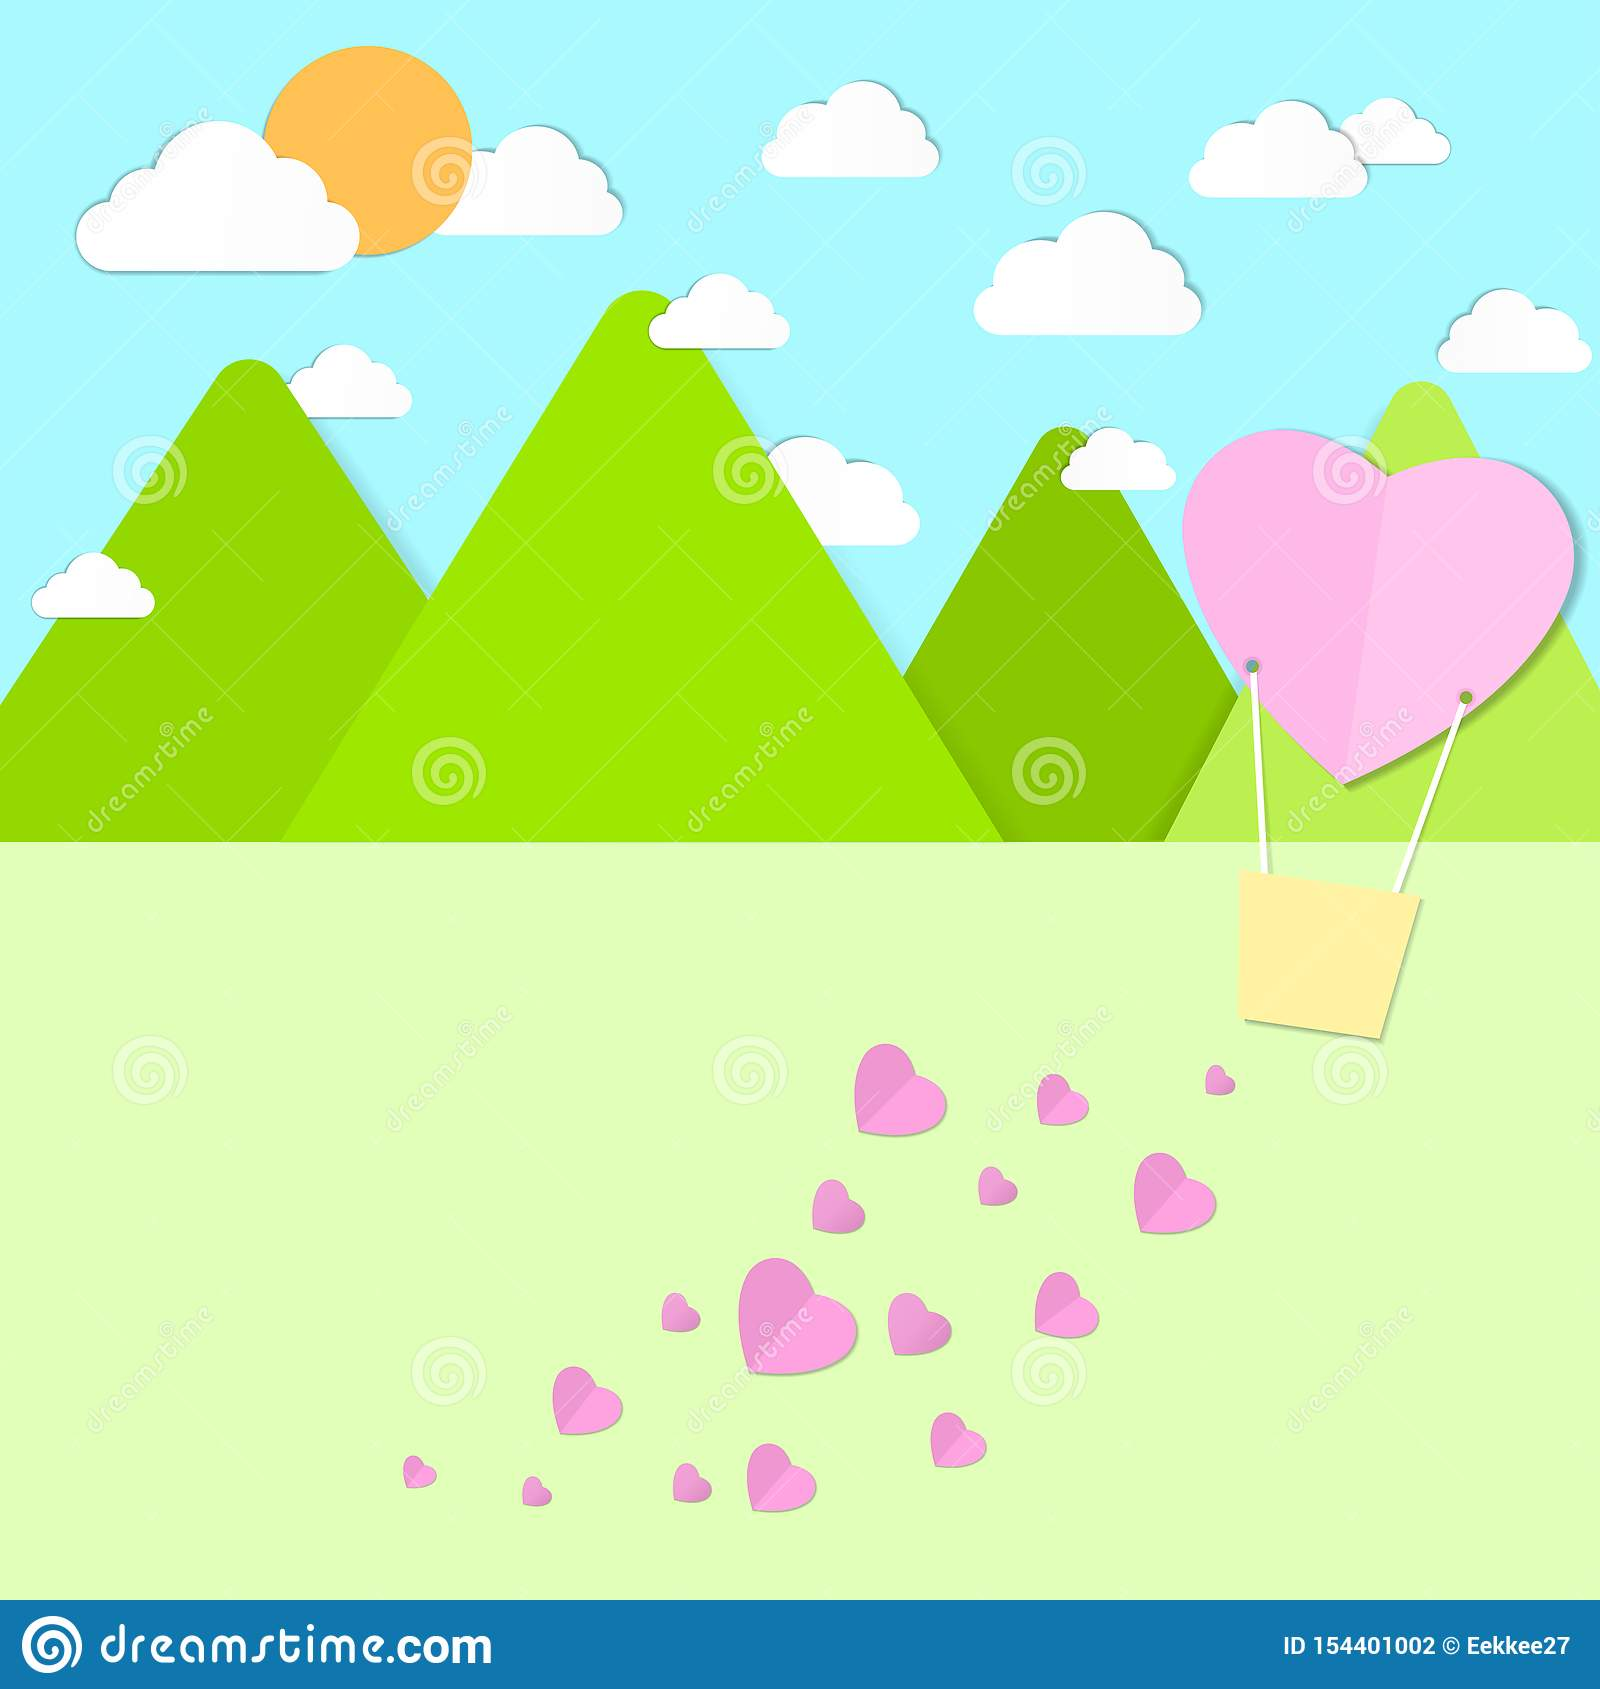 Heart balloon scatters the heart on a background of mountains, sky, clouds, sunlight, paper patterns.